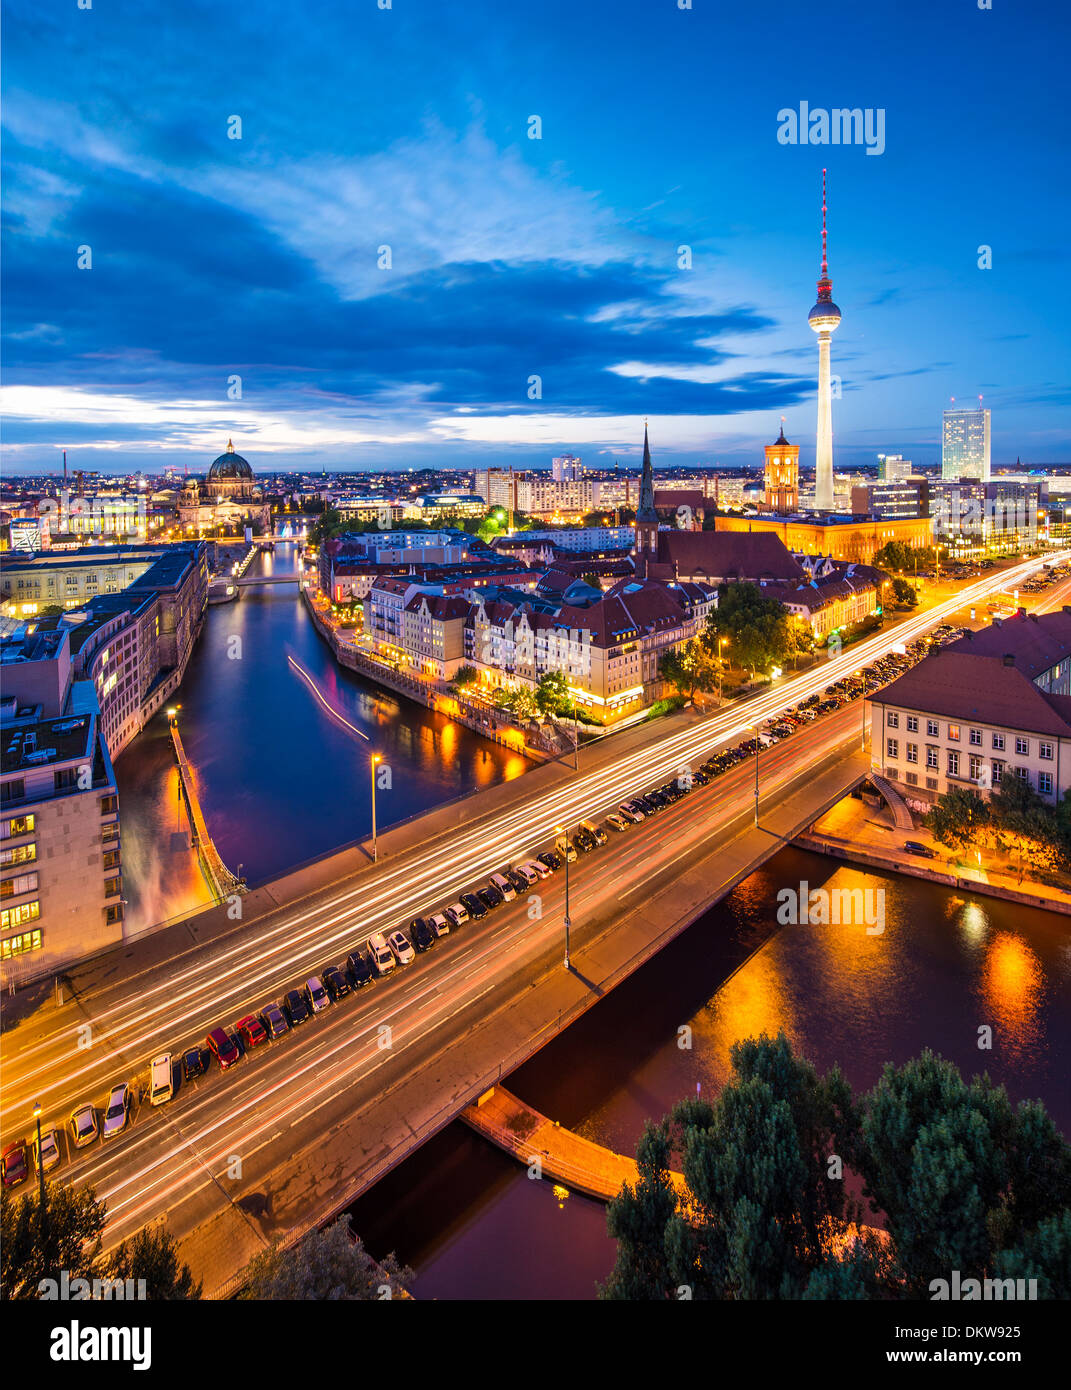 Berlin, Germany cityscape over the Spree. Stock Photo